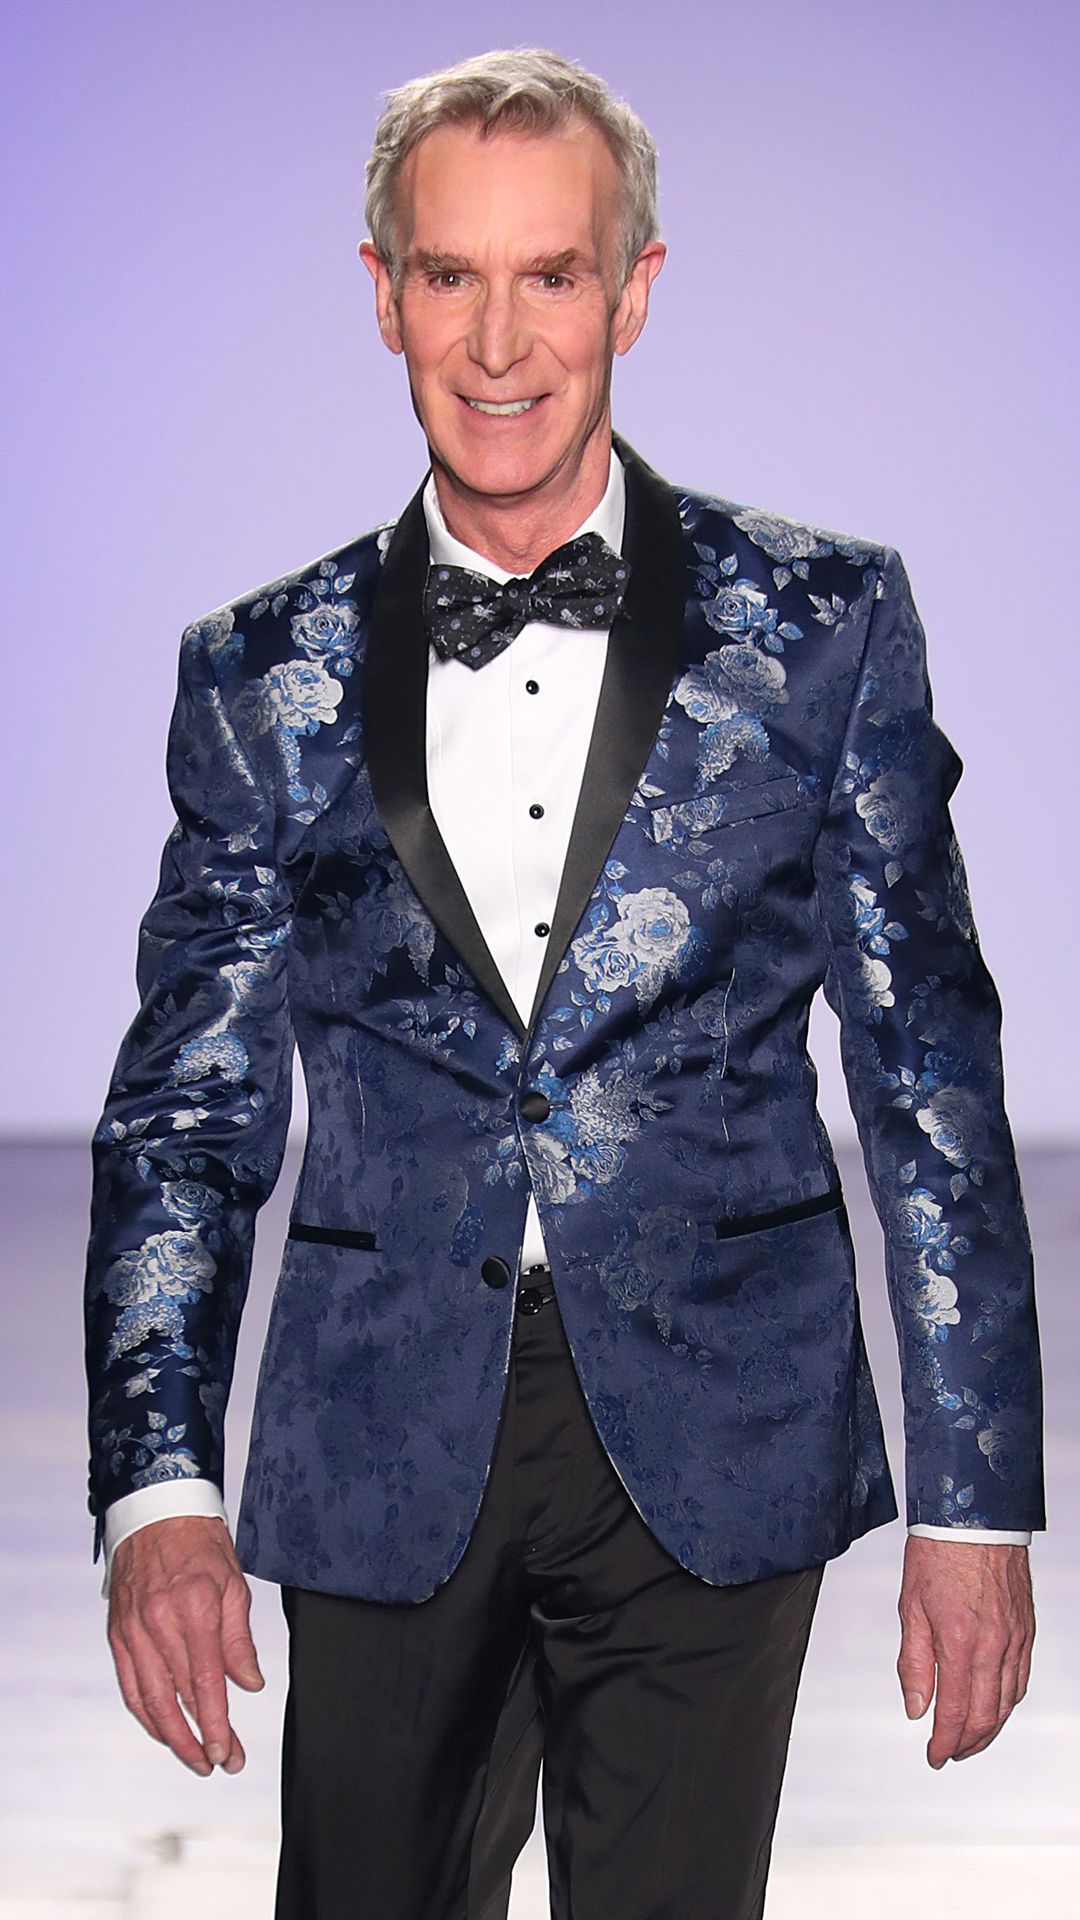 Image result for bill nye the science guy new york fashion week 2020